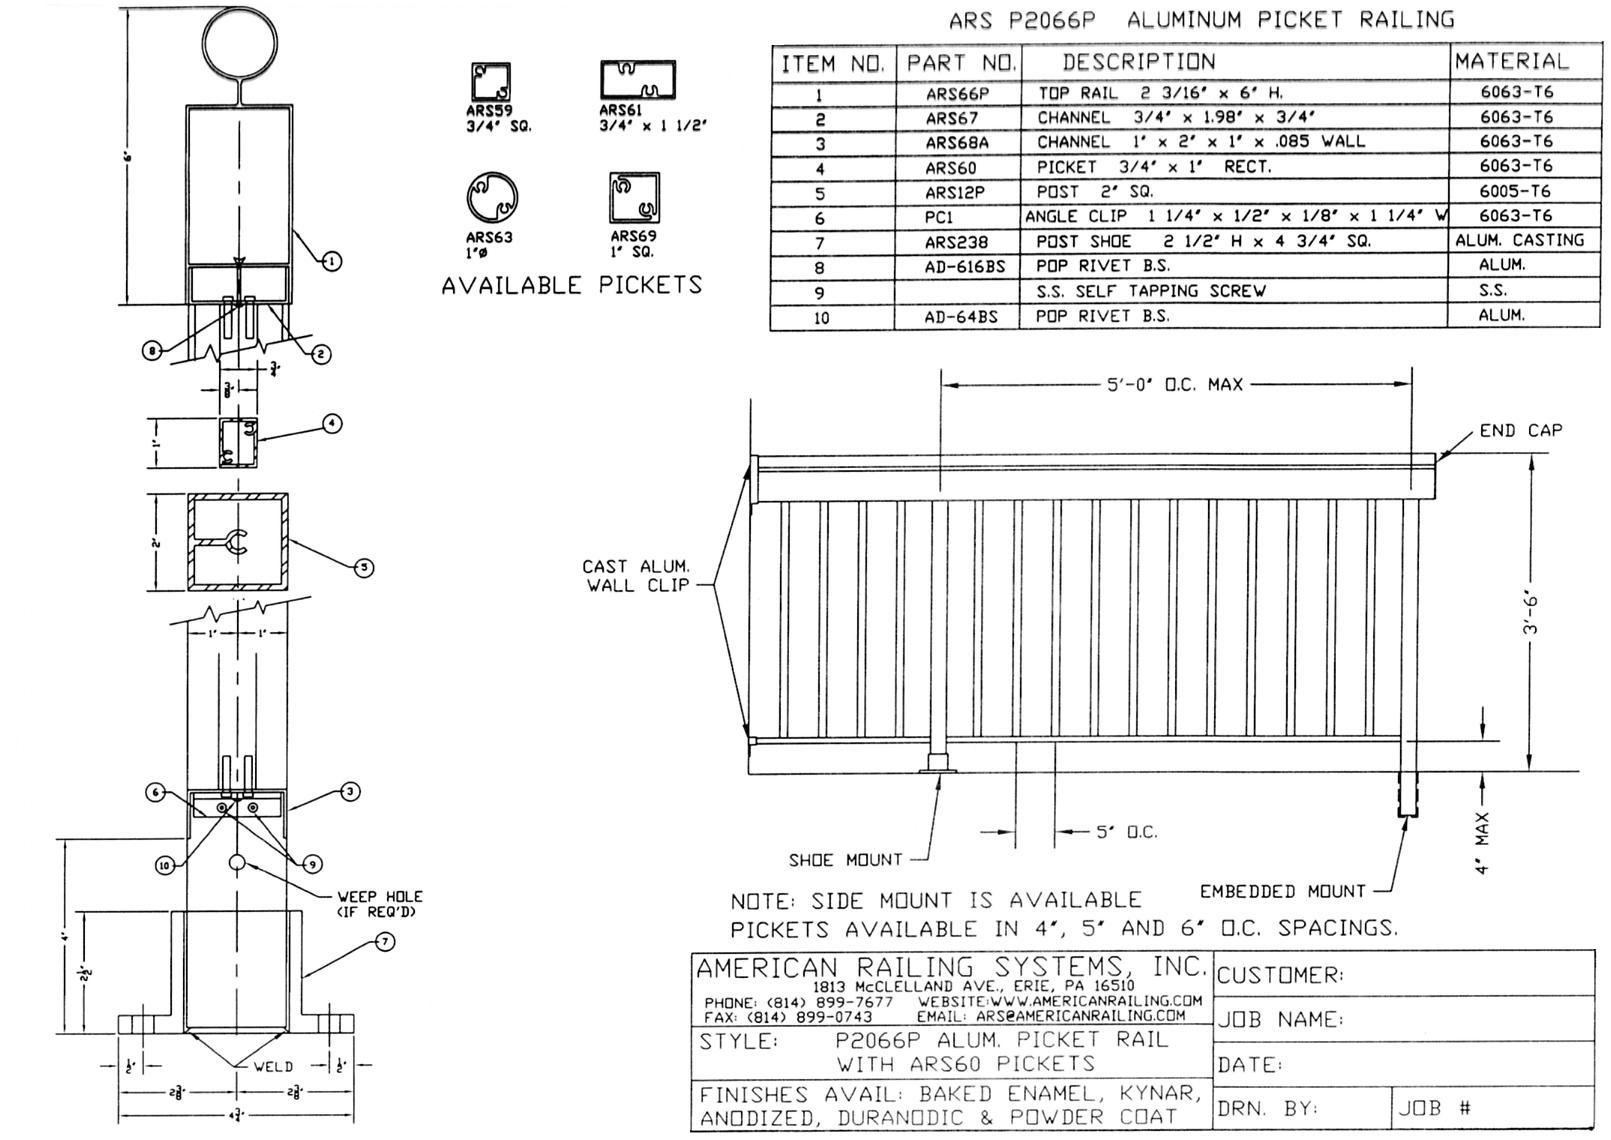 Osha handrail guardrail specifications cad drawing